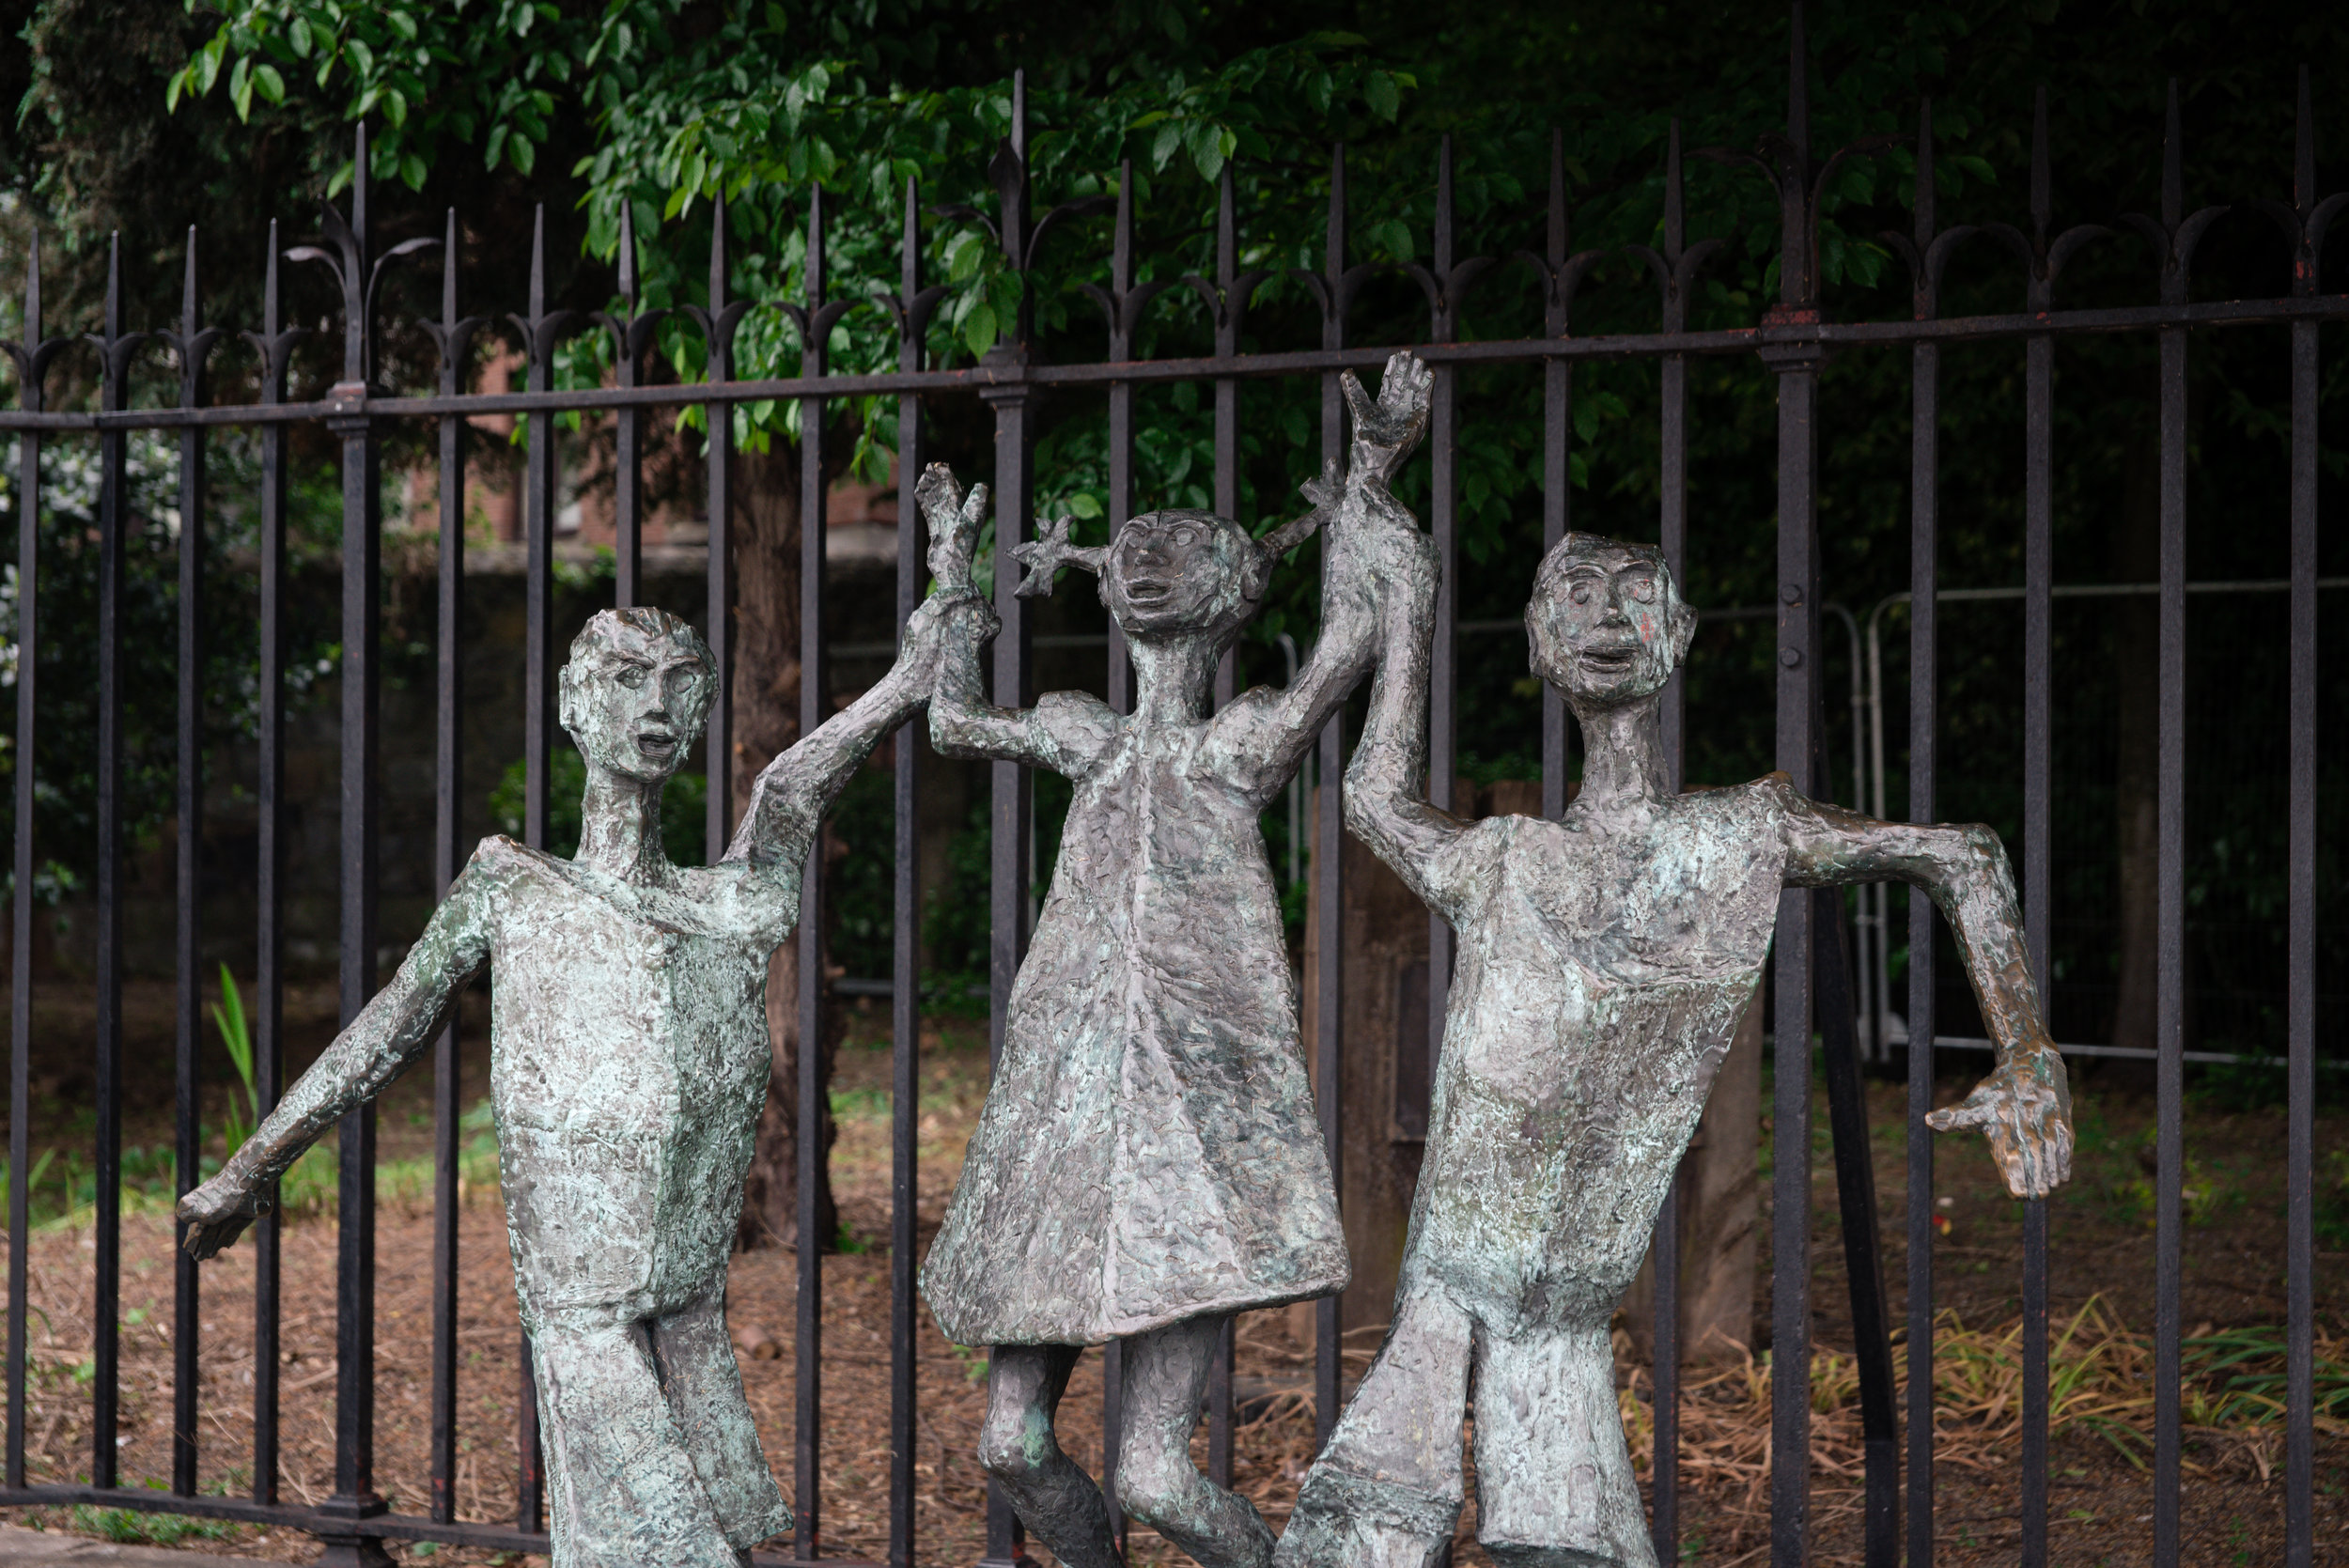 A statue dedicated to children born after/of the Millennium.